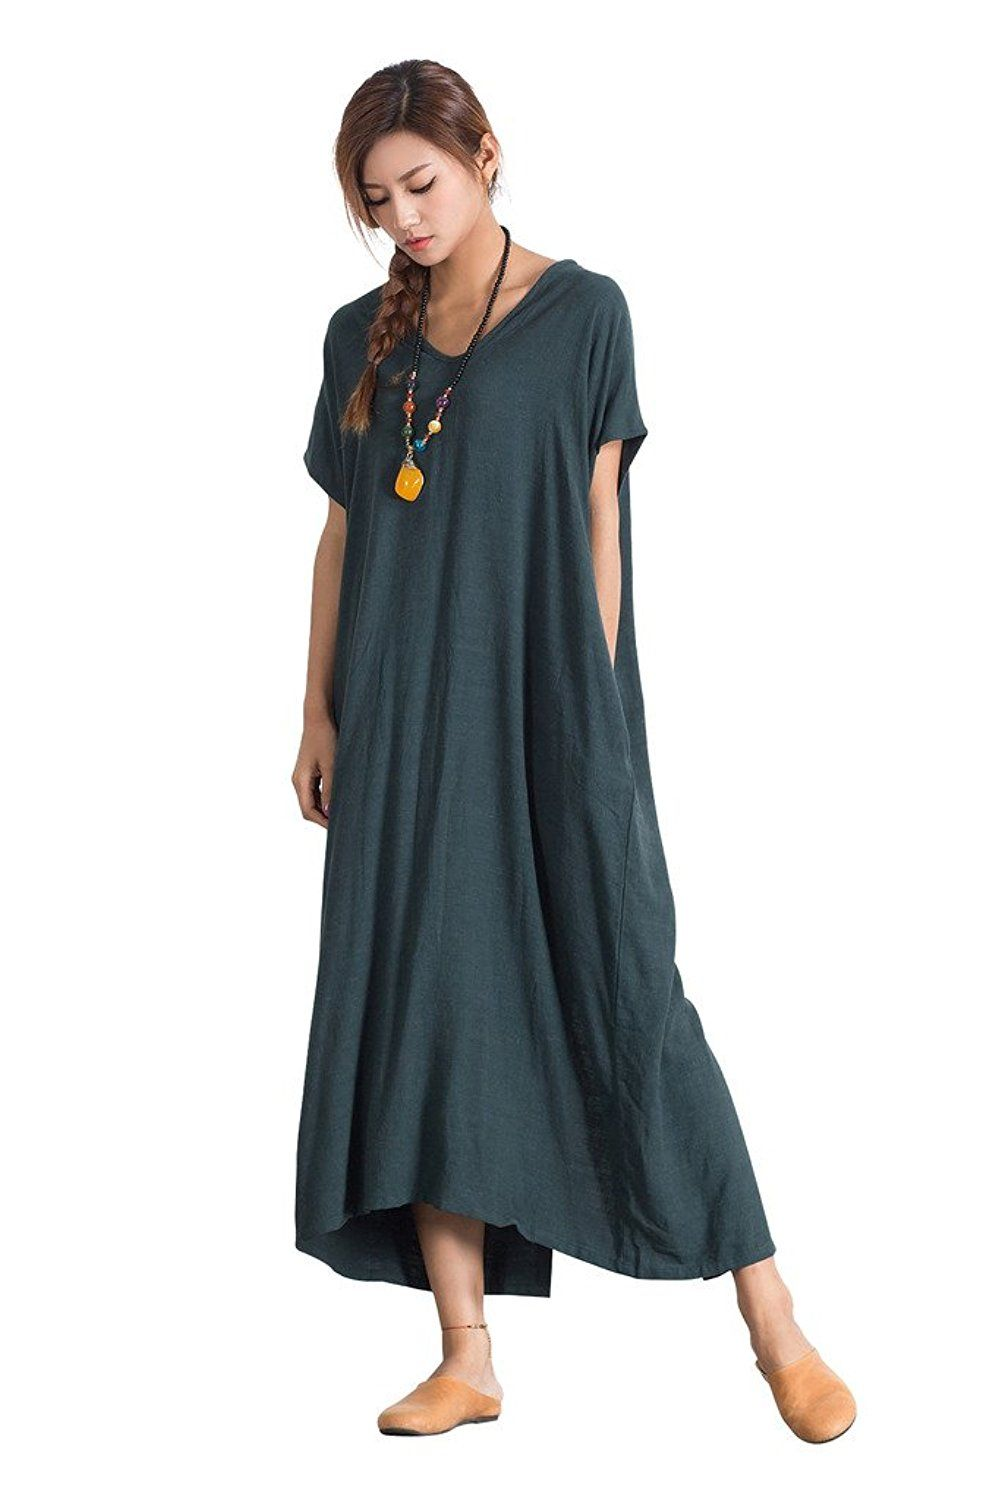 811cda7fc38 Sellse Women s Linen Loose Summer Large Size Long Dress Plus Size Cotton  Clothing at Amazon Women s Clothing store